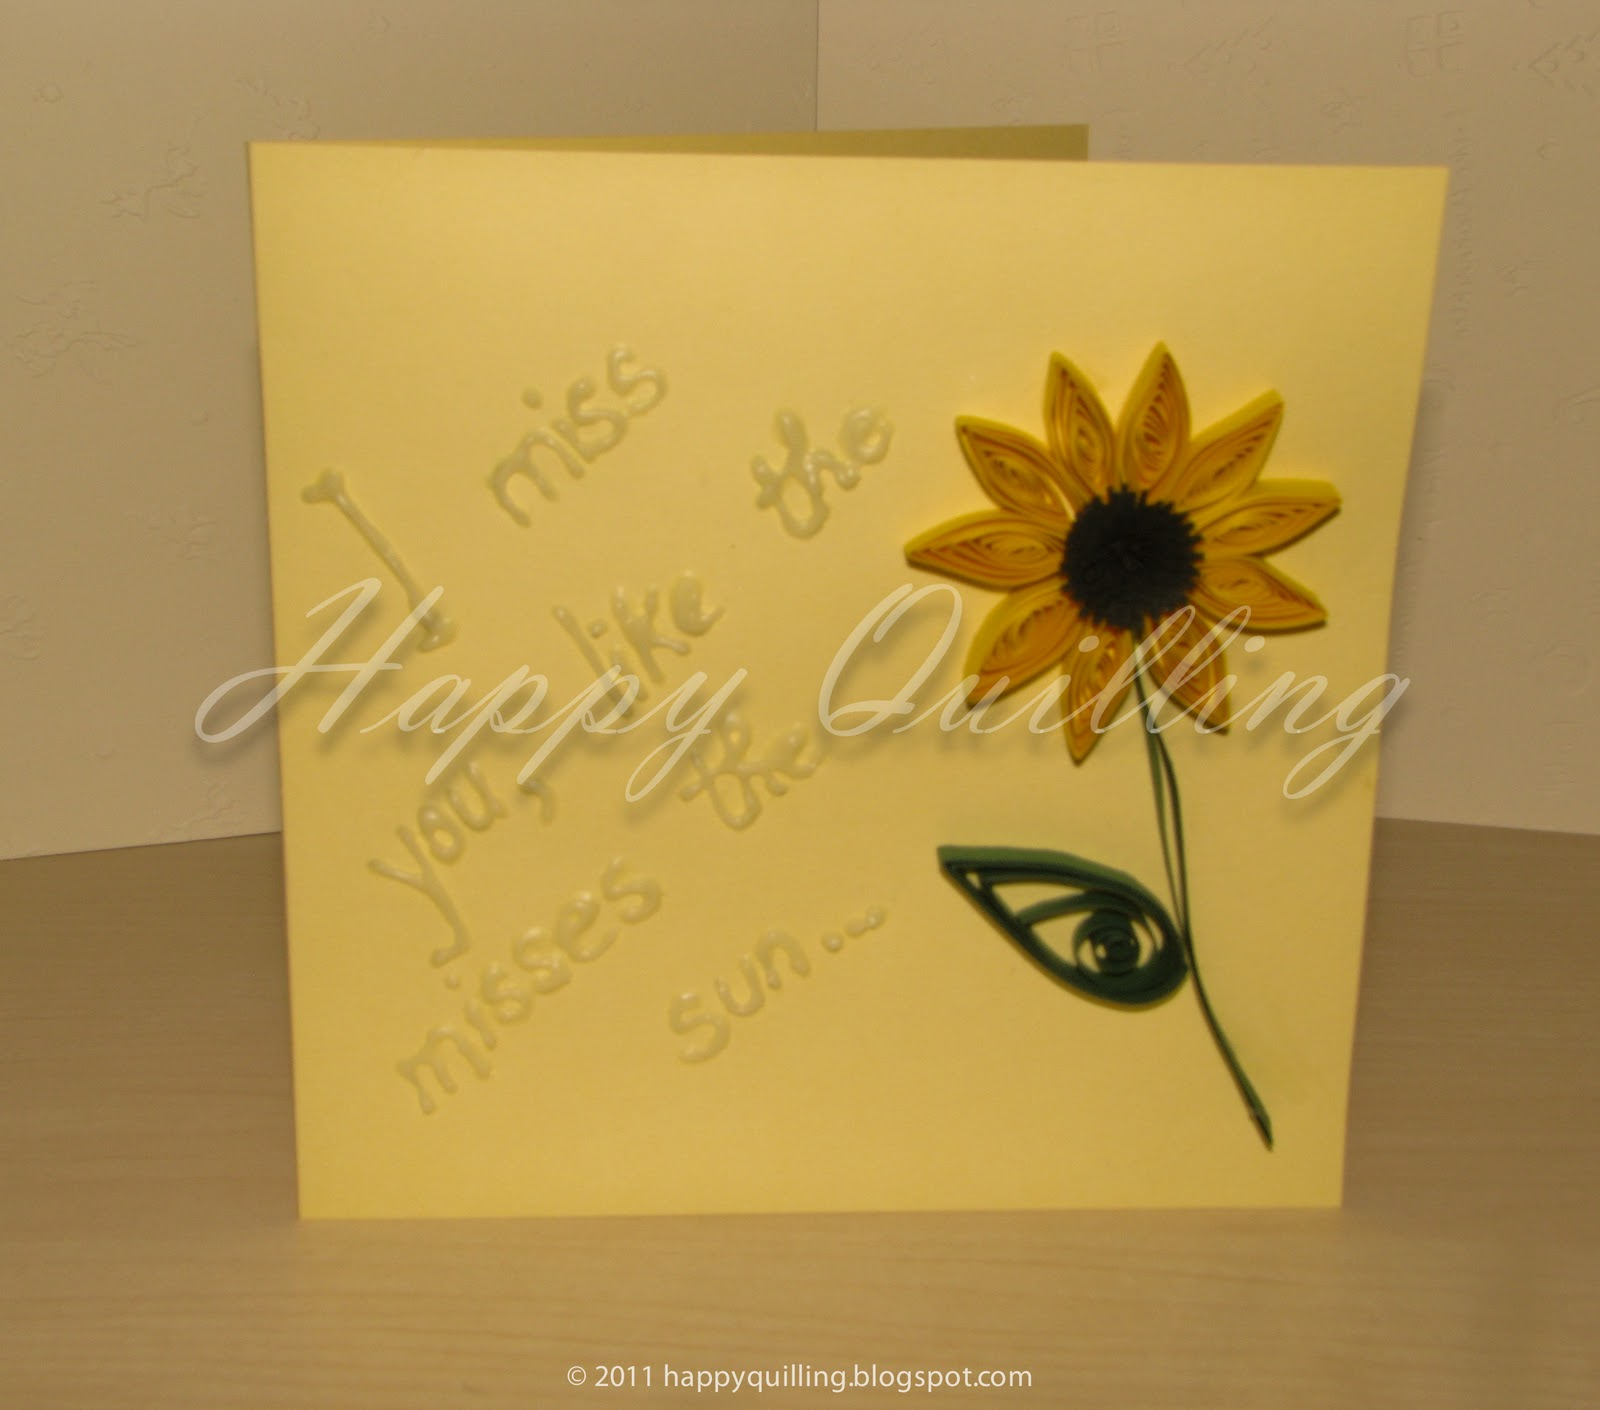 Miss You Libro Happy Quilling I Miss You Like The Sunflower Misses The Sun